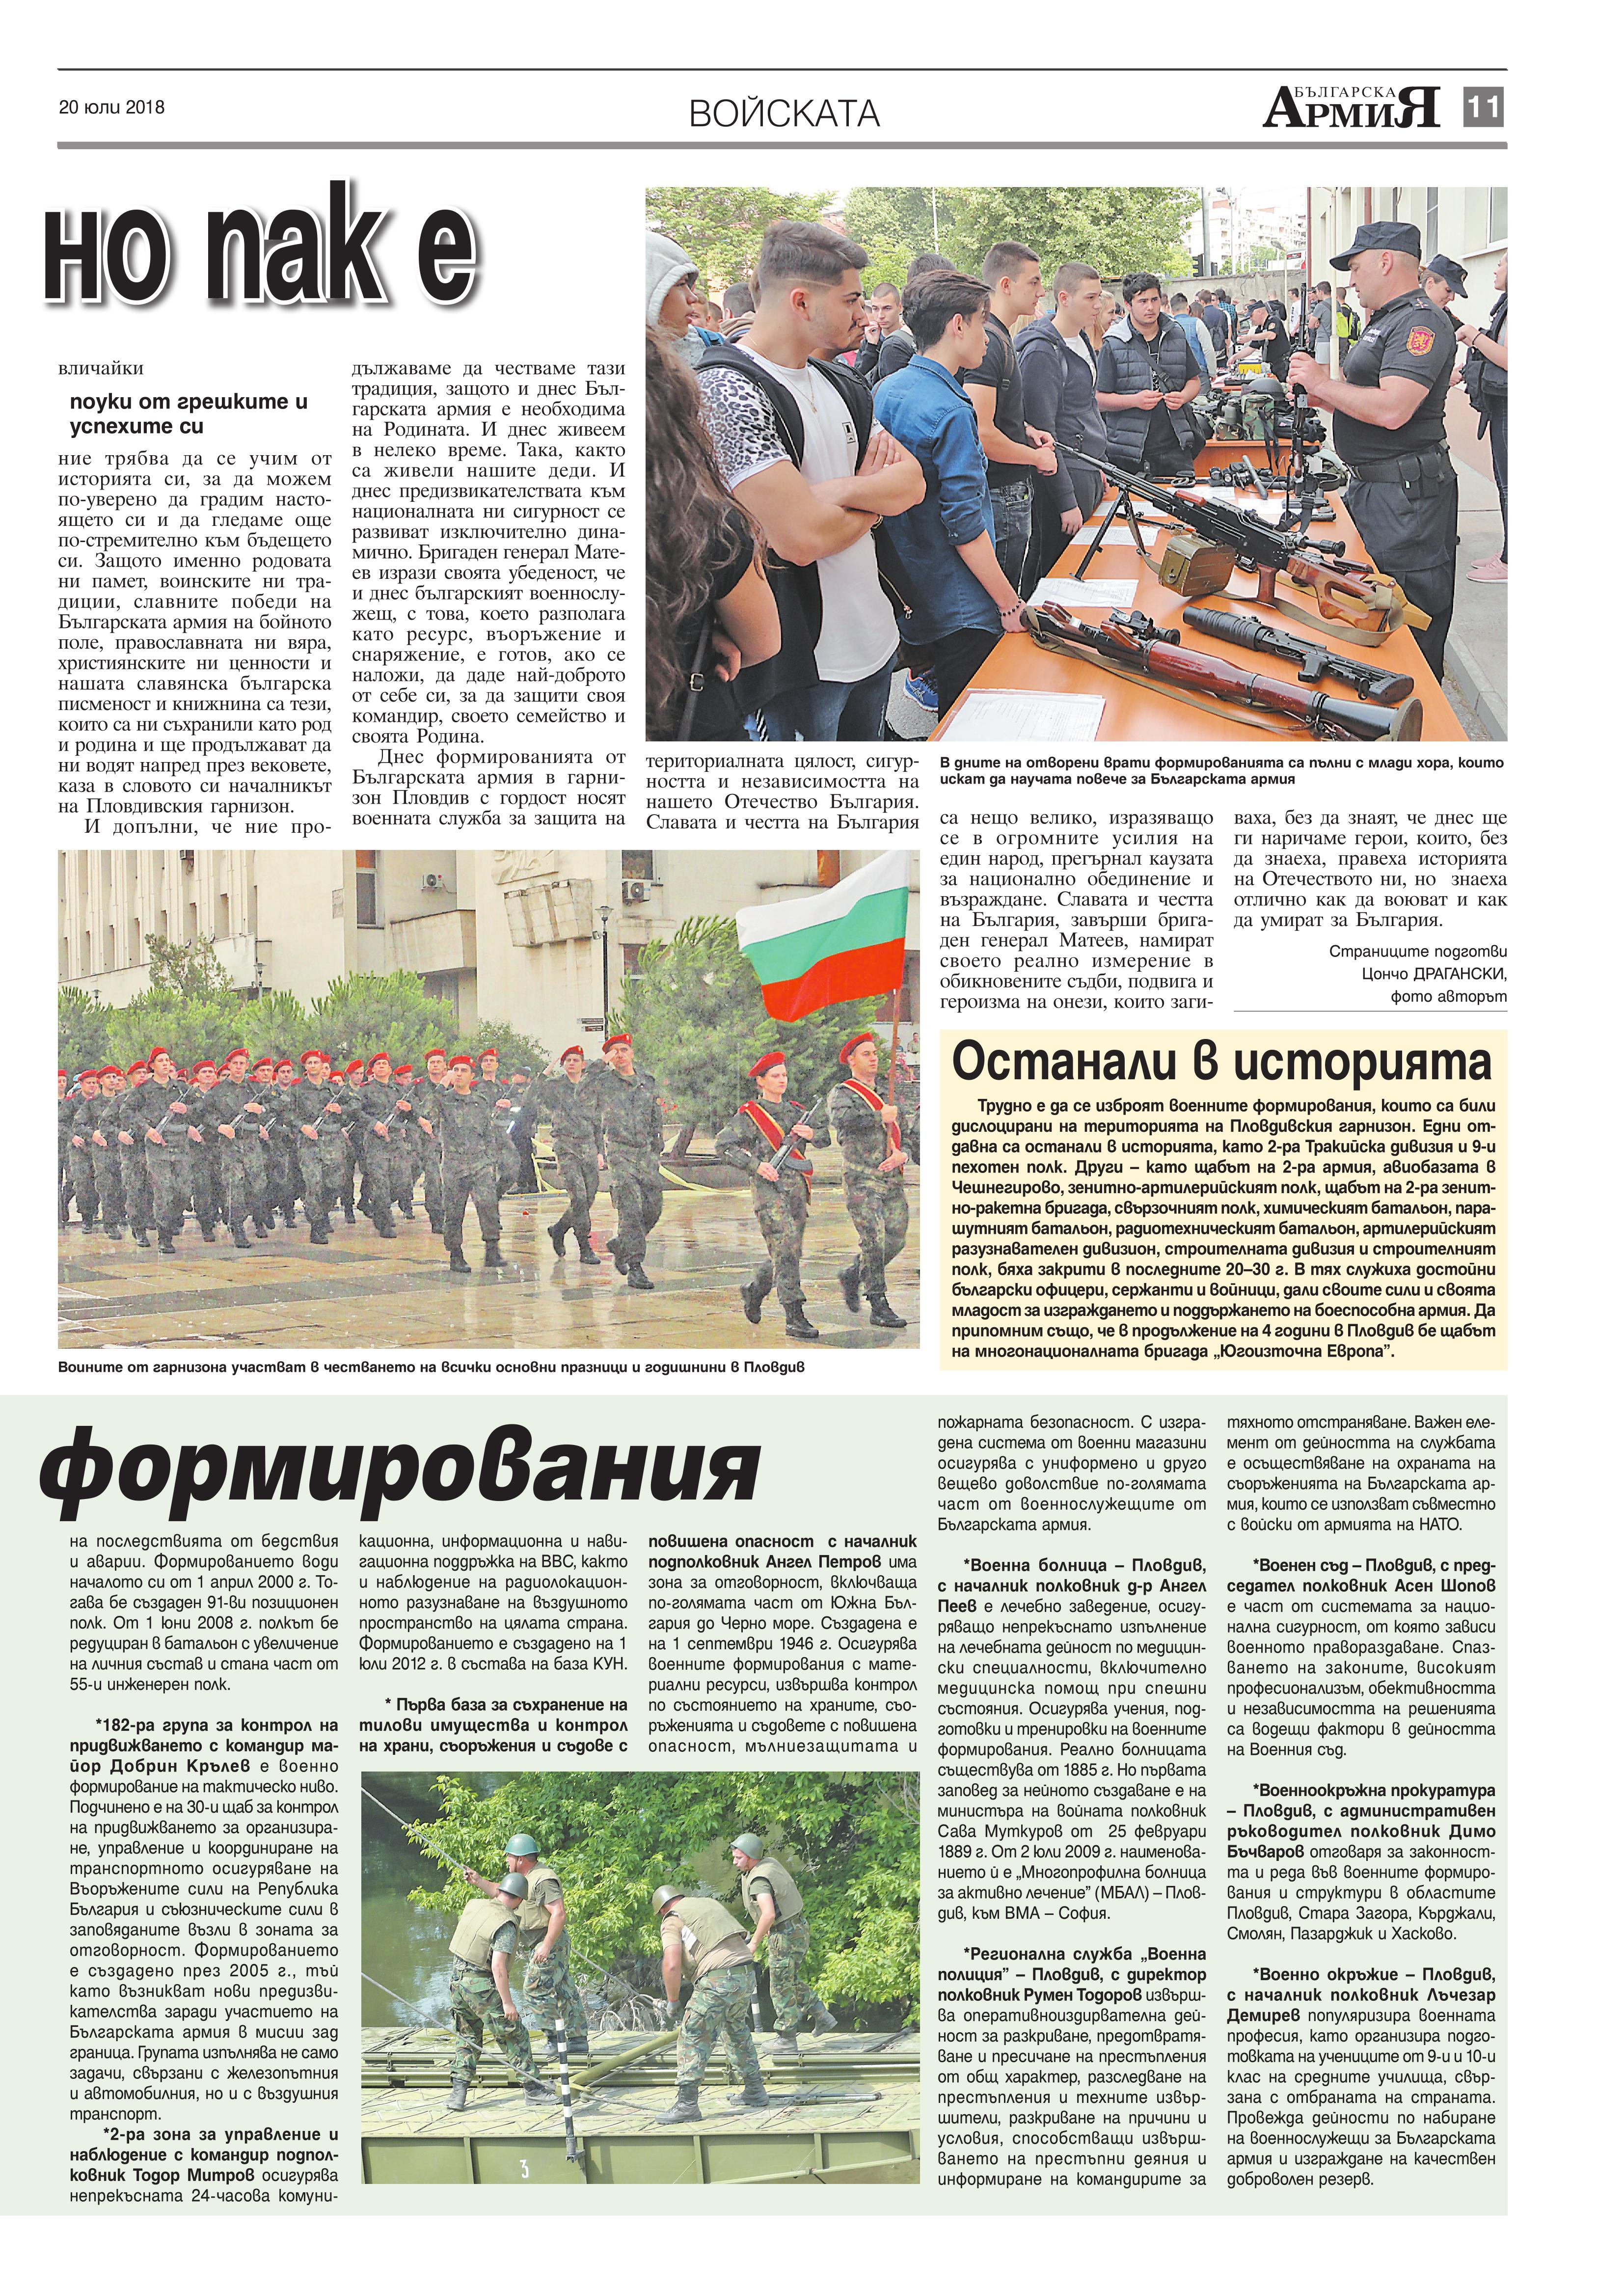 https://armymedia.bg/wp-content/uploads/2015/06/11.page1_-59.jpg